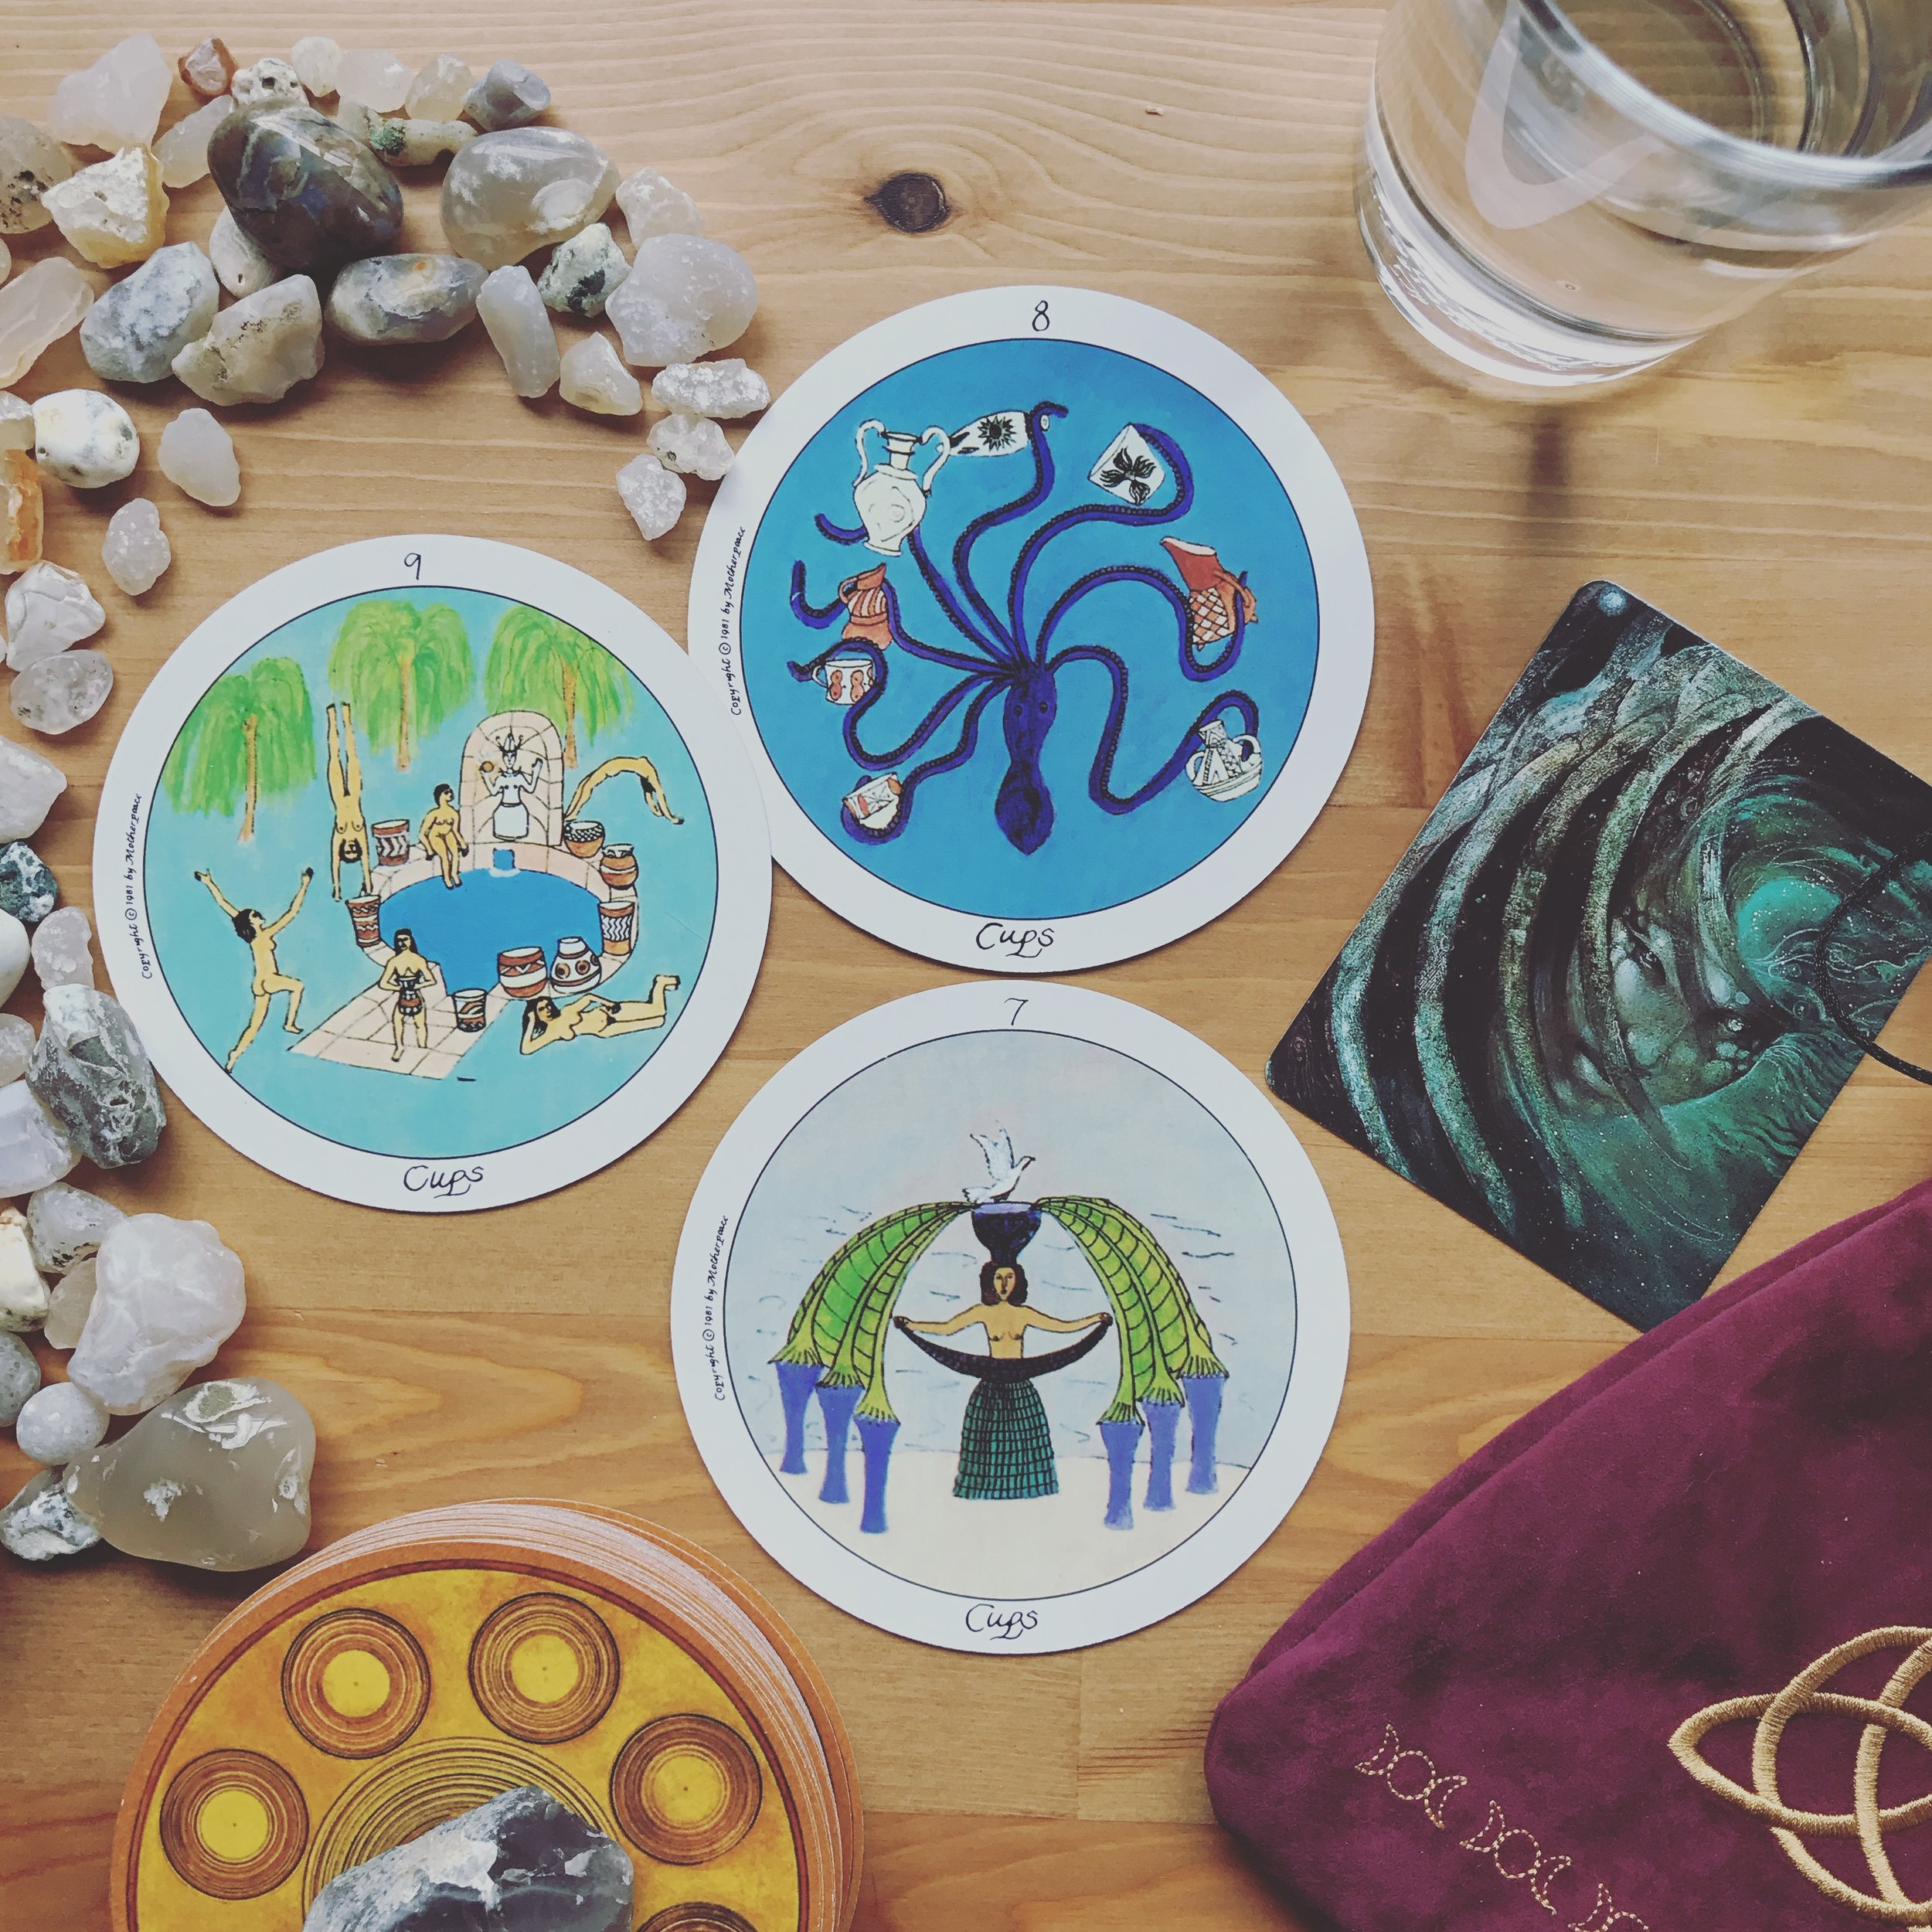 Water is life.  Water is life and Native American treaties must be honored.  Water is life and human rights are at stake.  Water is life and the needs of the people should be given a higher priority than oil in this country.  The fight for water is the fight for all of our lives. So I pray and think and cry and shuffle. The 8 of cups jumps out, how fitting. I finish shuffling and draw the 9 of cups, the wish card, and the 7 of cups, the card of illusion. I'm taken aback. This draw shows how much universe listens.  The power of prayer is real. When you are asked to pray for #nodapl and the #waterprotectors it is a real and serious request. Prayer has power. I included Sedna, the Inuit sea goddess and I'm calling in all of the water spirits I can feel and think of to aid the water protectors, to keep them strong, to give them hope, to bring compassion into the hearts of the police and military who threaten them. And I wish.  This is only the beginning friends. And no matter what happens today, do not give up hope. Get louder, be outraged, pray harder, look for solutions in your own community and beyond. This is our reality check. Some of us may have been under the illusion that our government would put people's rights above corporations or maybe we didn't think it would go this far to protect big oil. Now the veil is being pulled back and we are witnessing how much of a lie we have been told. Our voices will be silenced, our laws ignored, and our power suppressed by our own government if we threaten the power of big oil.  So the fight for this earth and her resources, the fight for our children and ourselves, the fight for justice, is all coming down to us. You. Me. Them. The people. Our government may be corrupt and bold, but we have power in prayer, justice, and numbers. Do NOT give into the illusion that you are powerless, that WE are powerless in this… That's exactly what those whose greed pollutes and corrupts our country want us to think.  Gather strength, griev